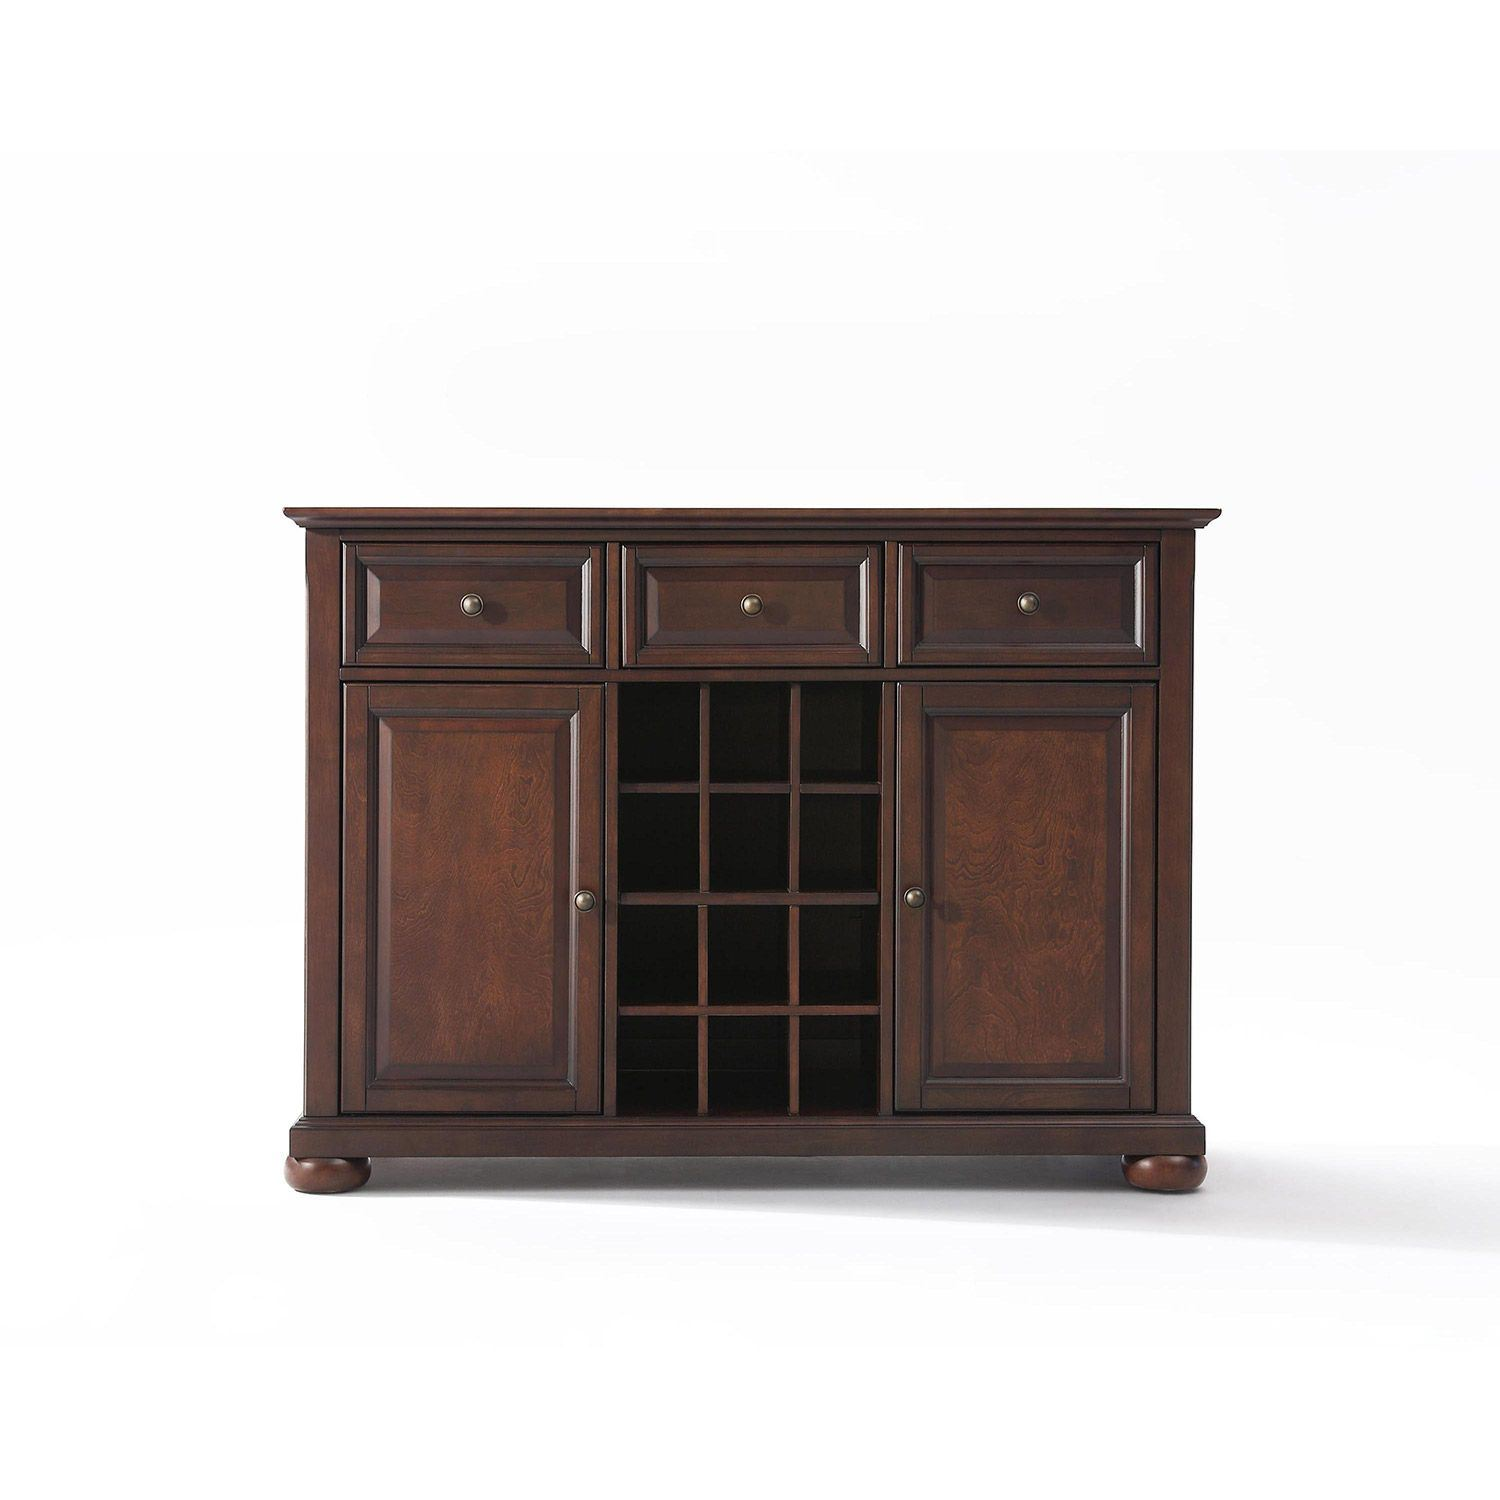 Picture of Alexandria Buffet Server / Sideboard, Mahogany *D